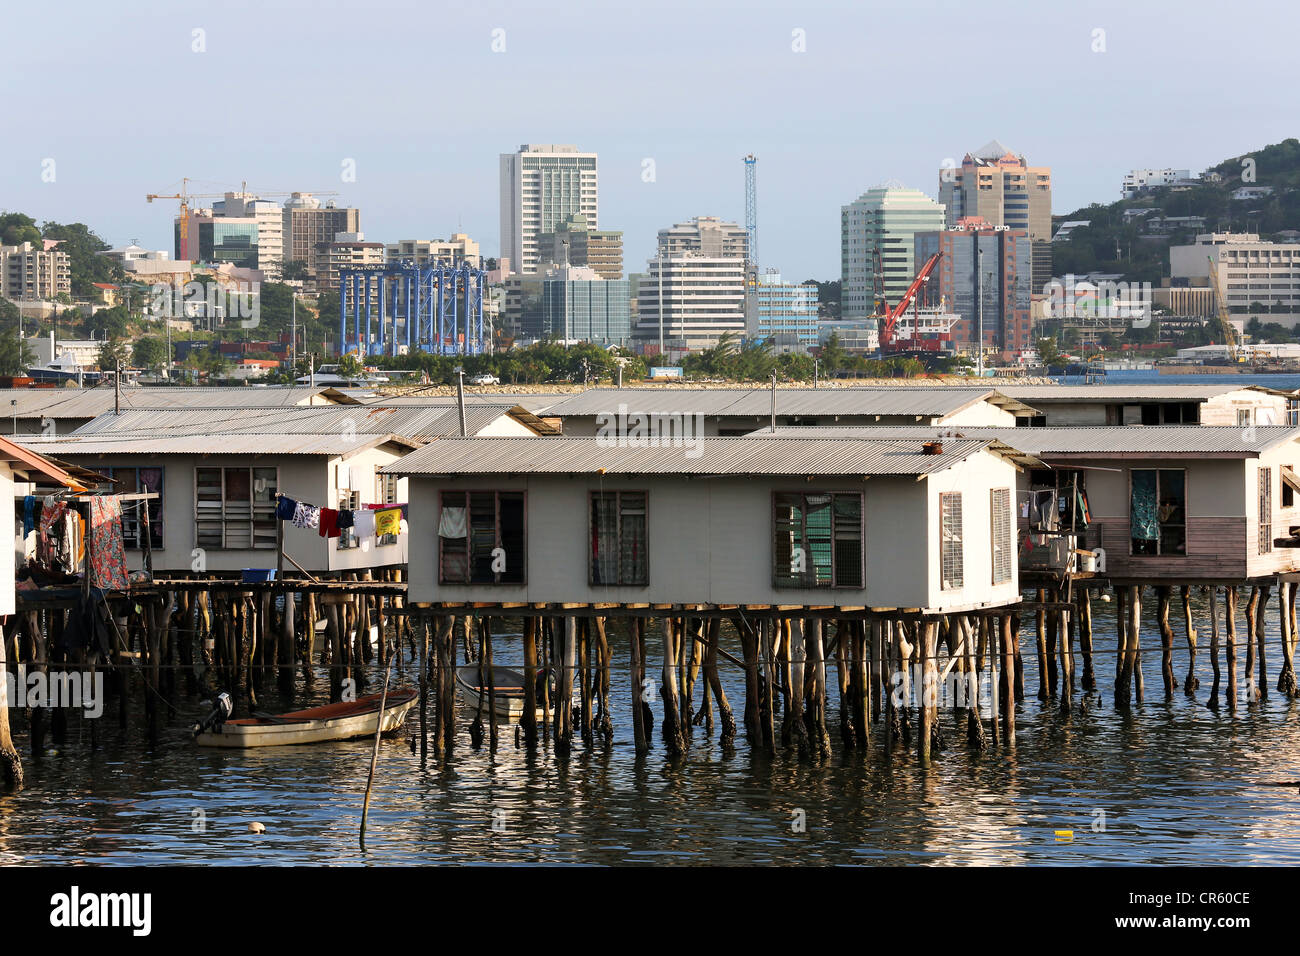 Houses on stilts, skyline of Port Moresby, Capital of Papua New Guinea - Stock Image